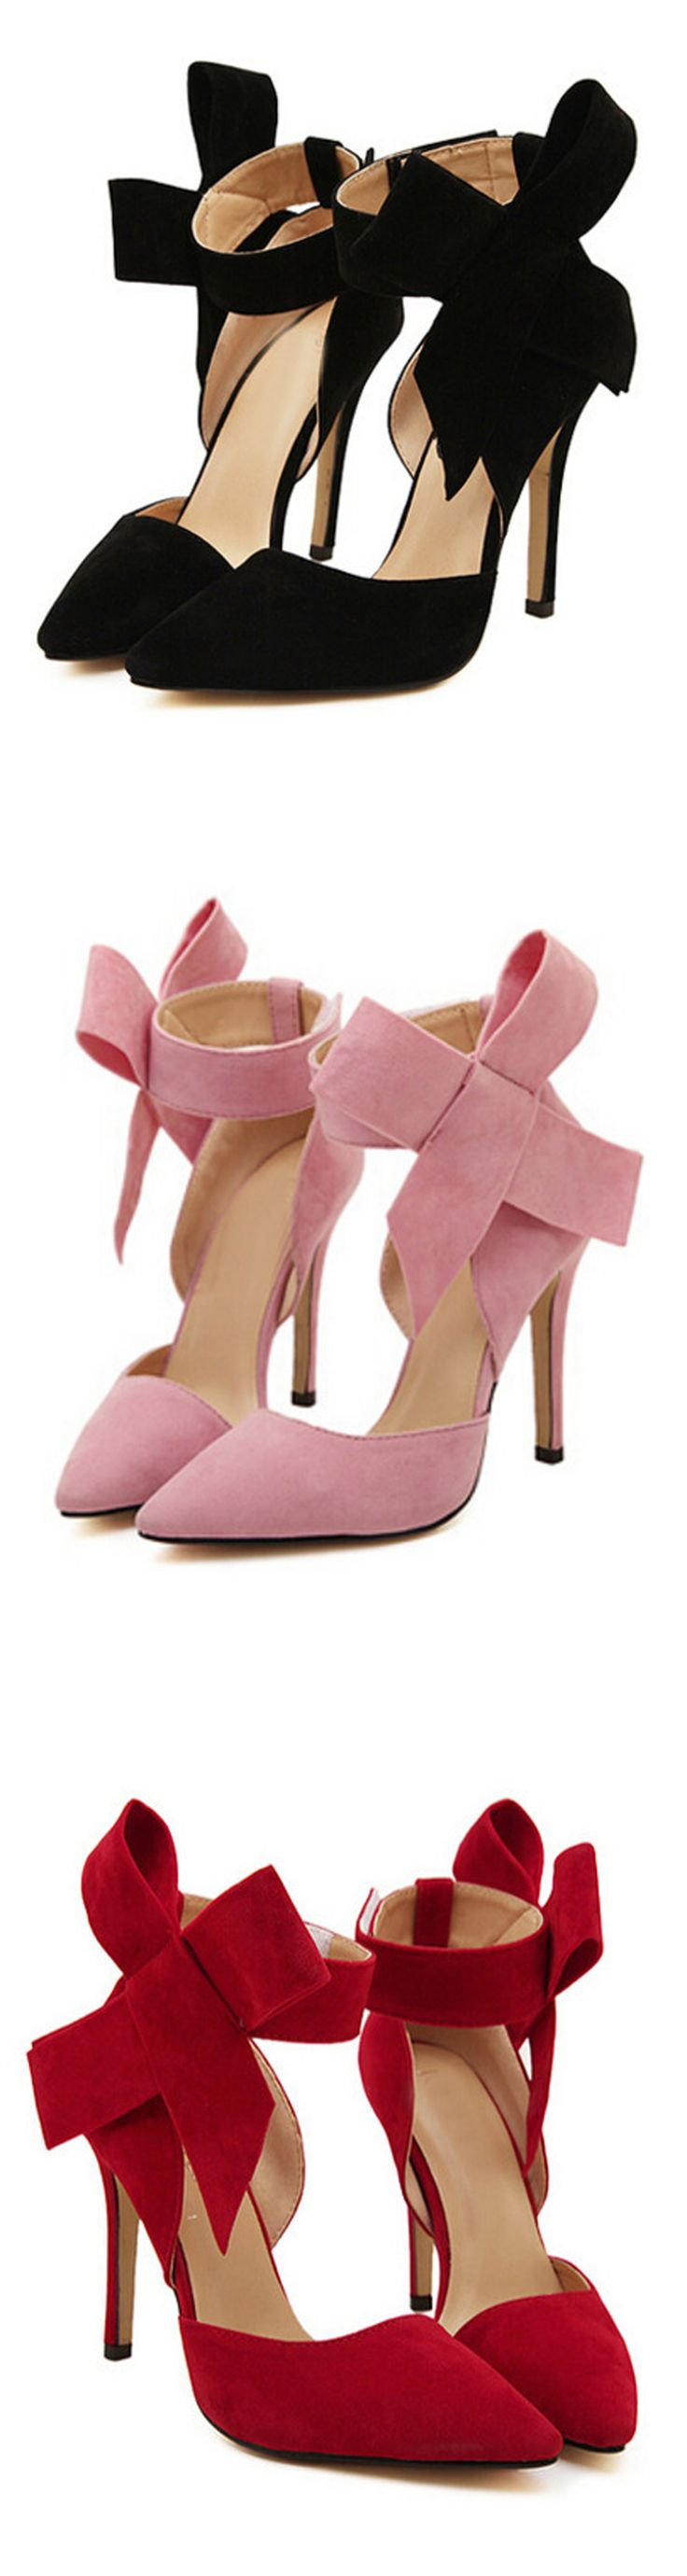 Bow Slingbacks High Heeled Pumps, three colors~